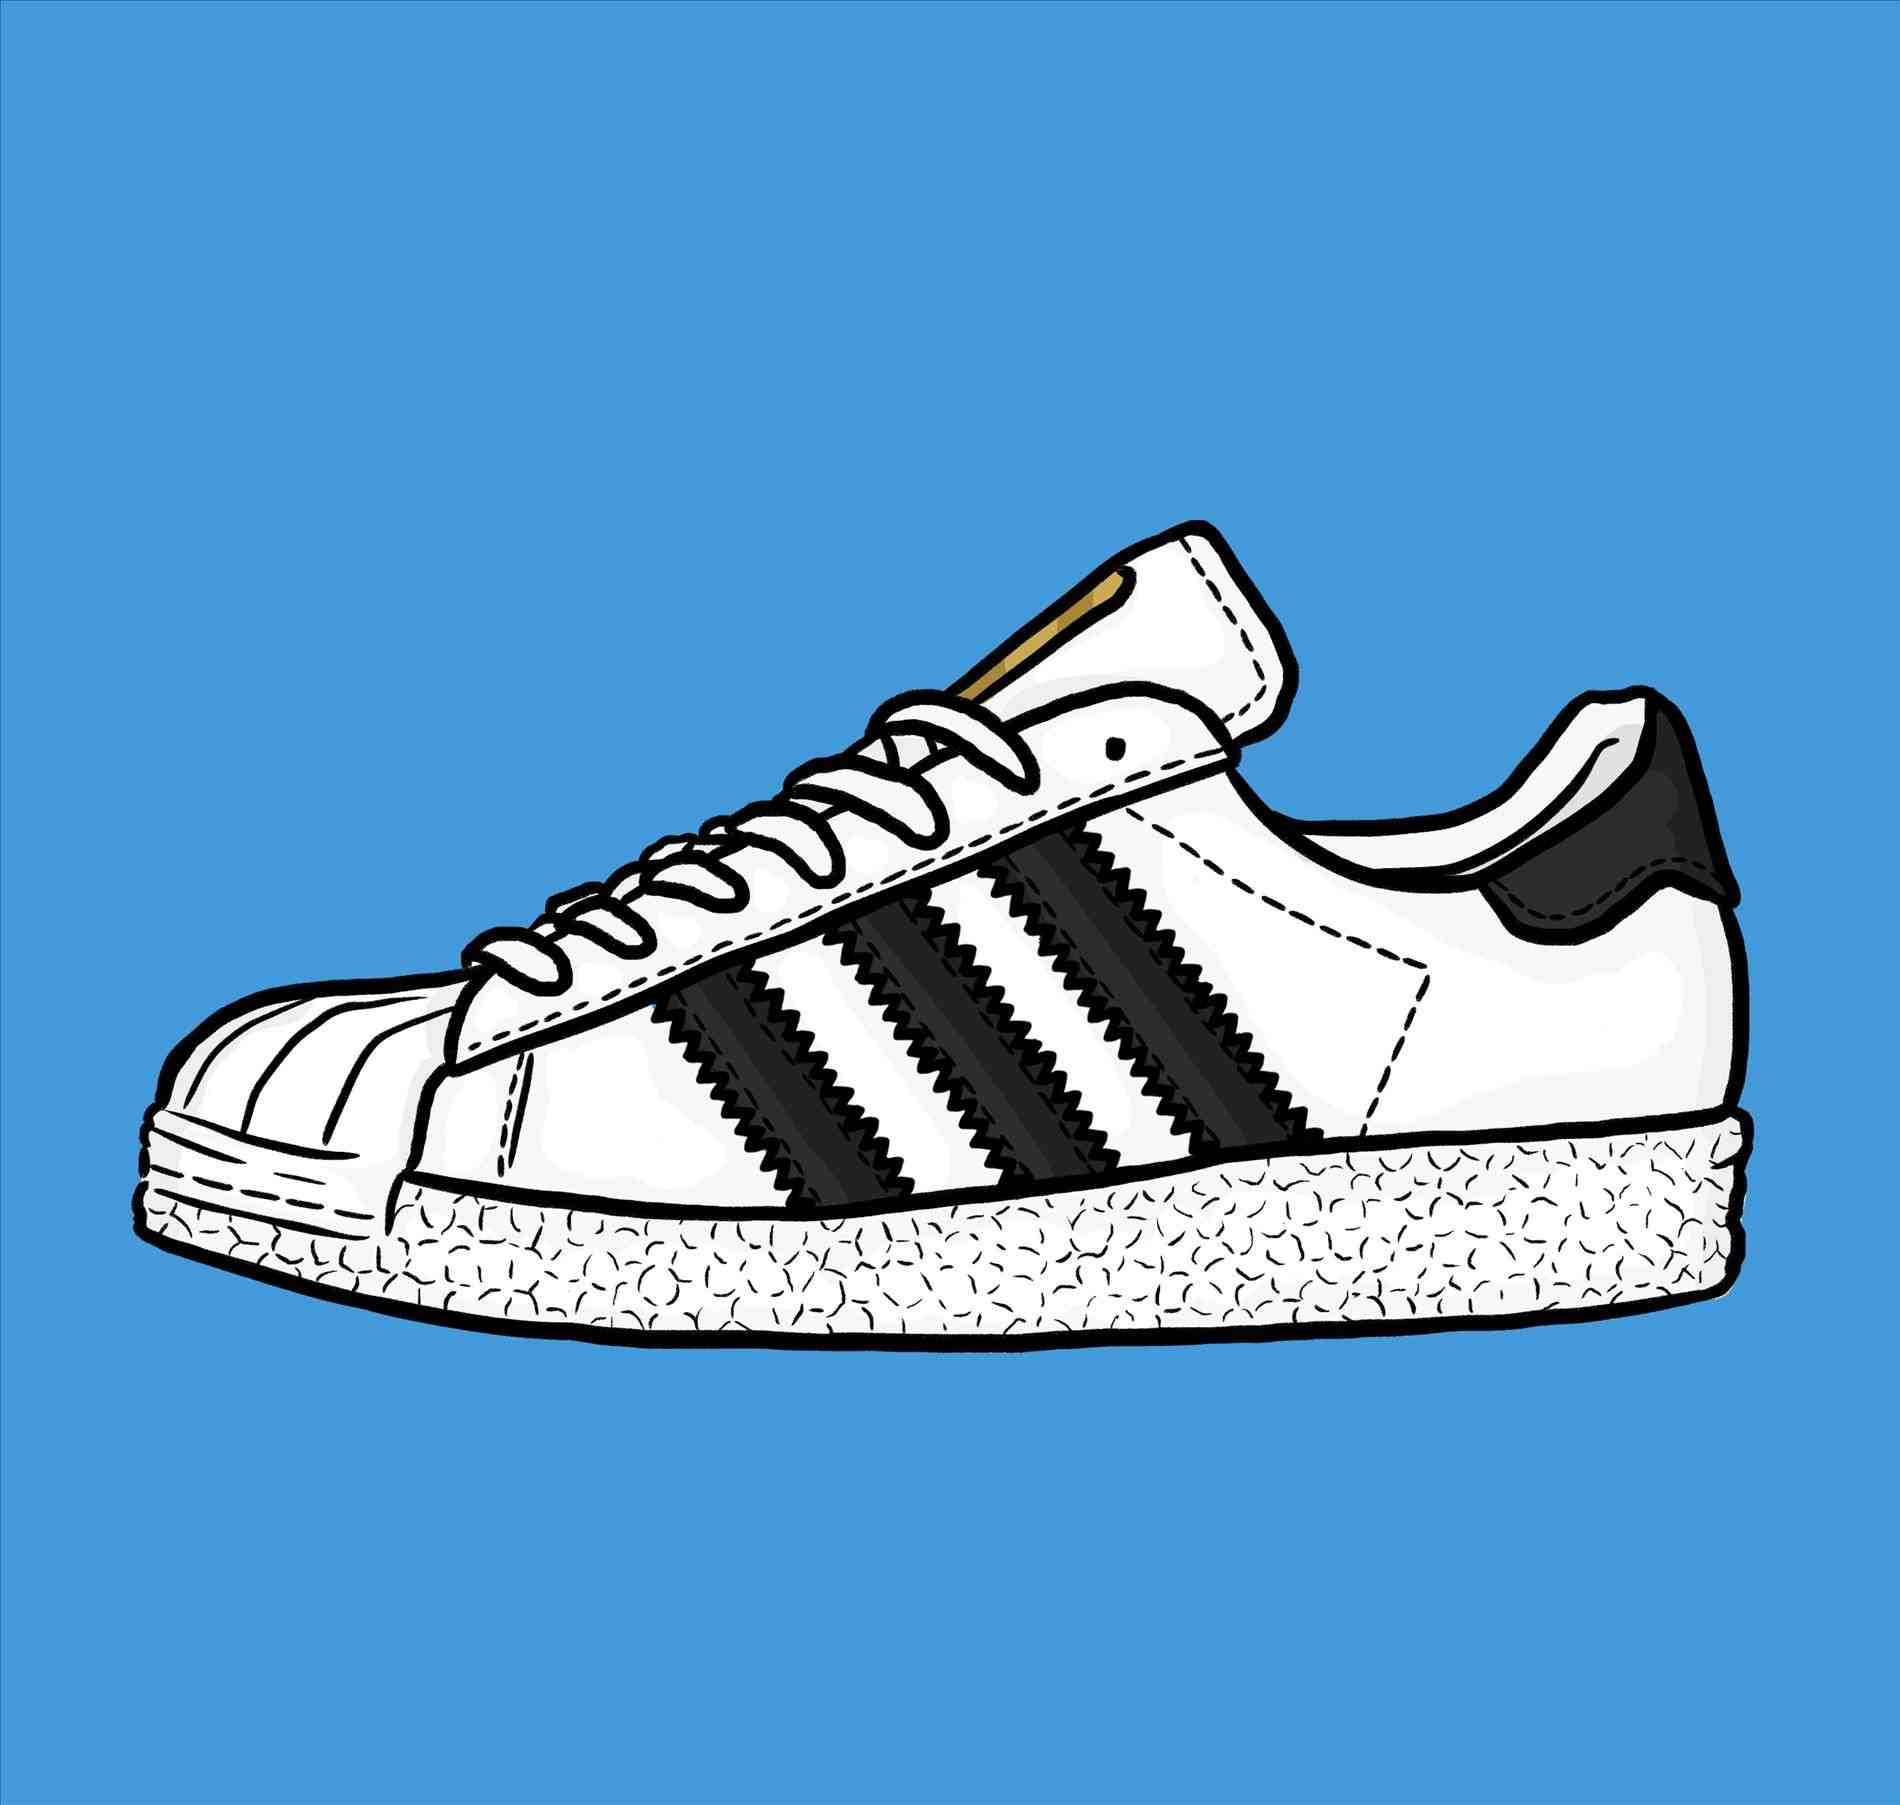 new style 07d79 aa2f1 Adidas Drawing at GetDrawings.com | Free for personal use ...